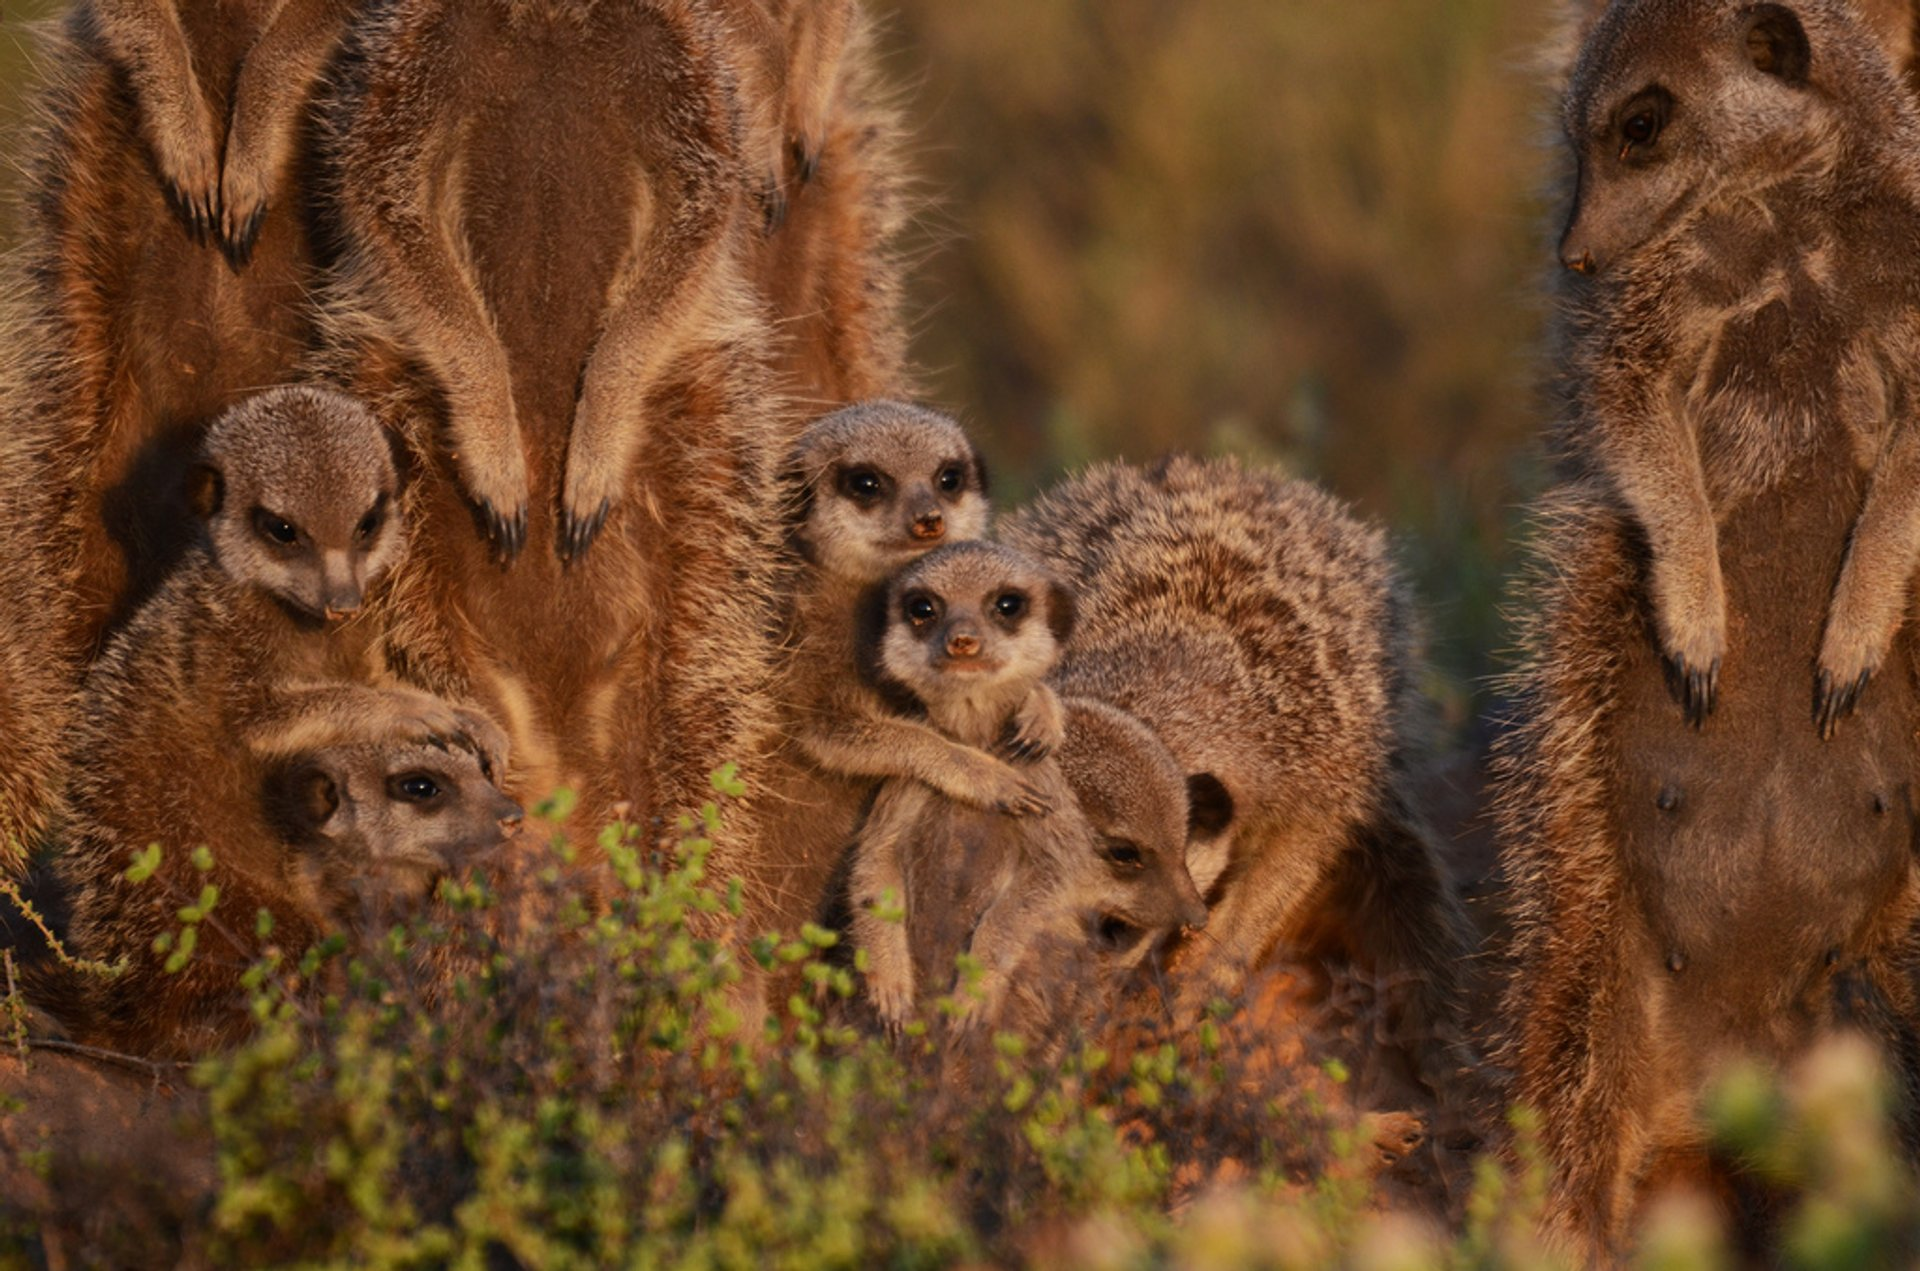 Meerkat Wonder at Sunrise in South Africa 2020 - Best Time